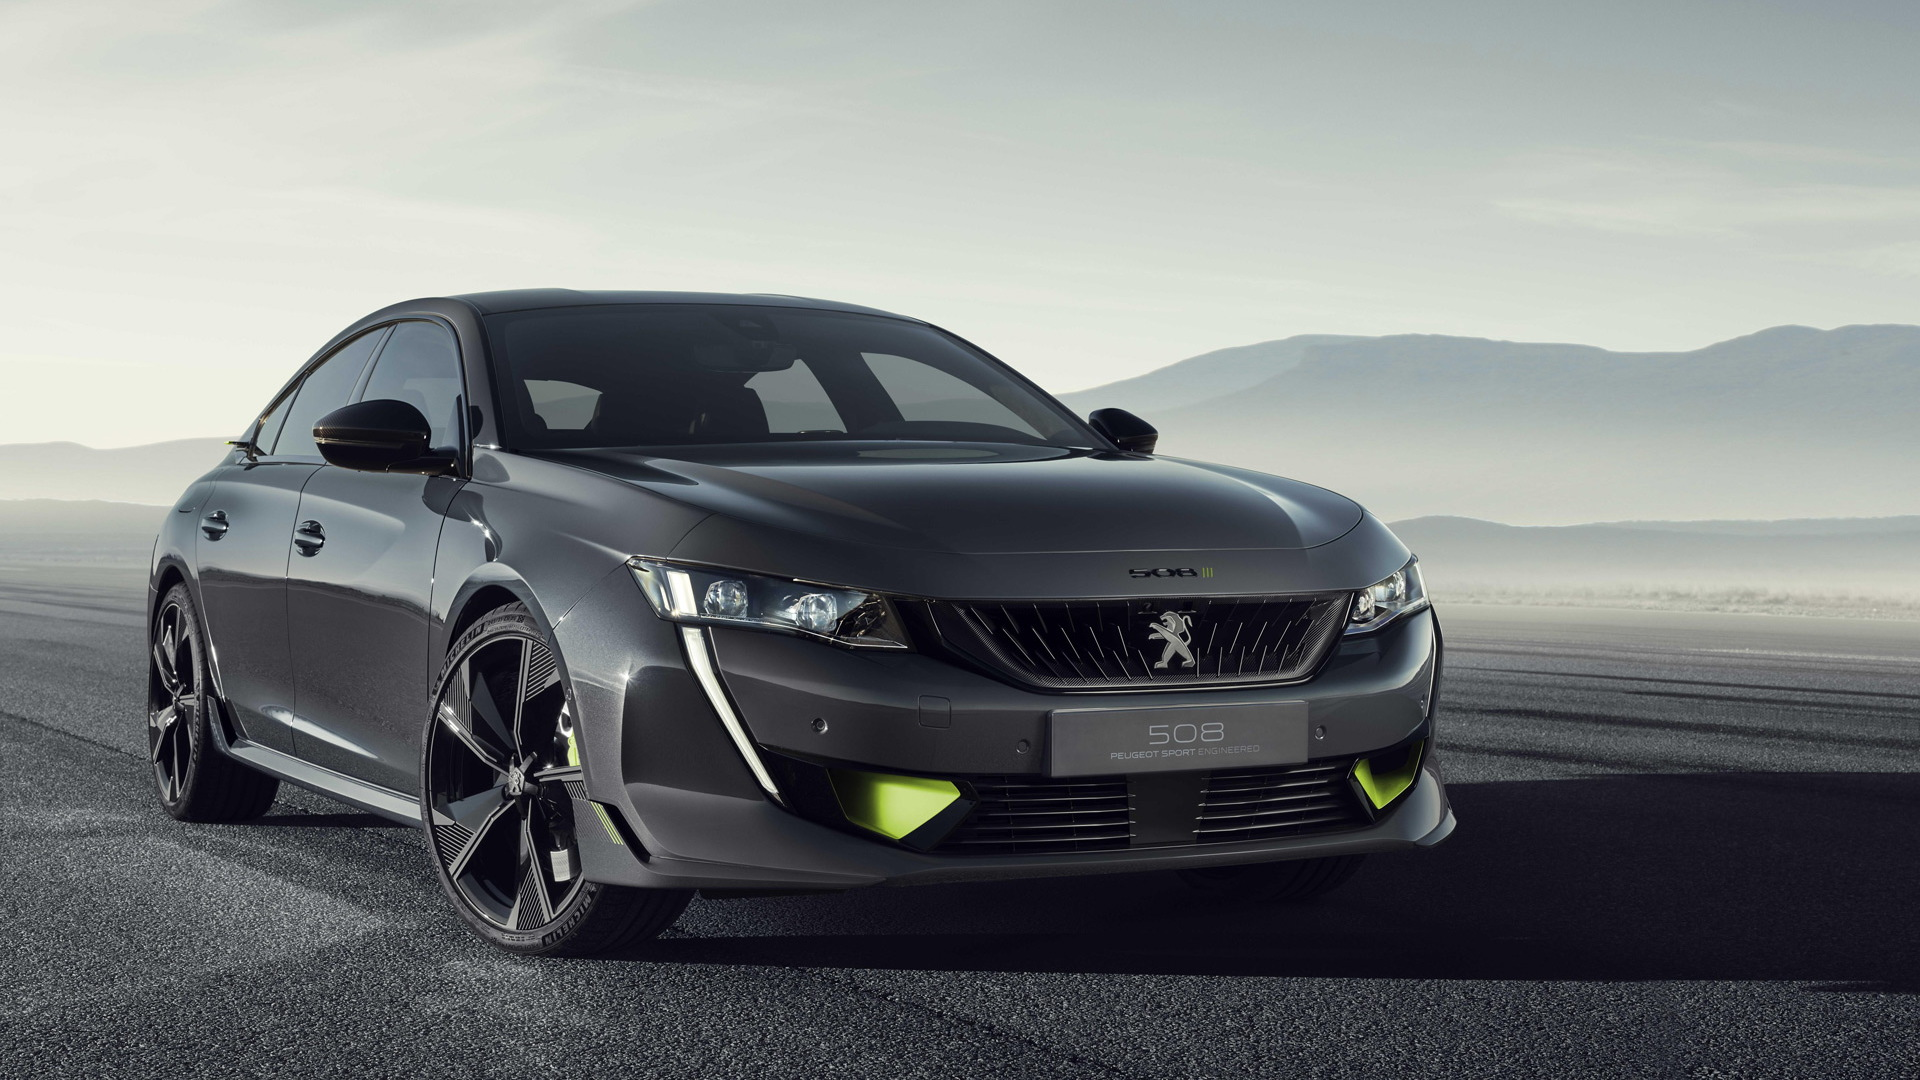 Peugeot 508 Peugeot Sport Engineered concept